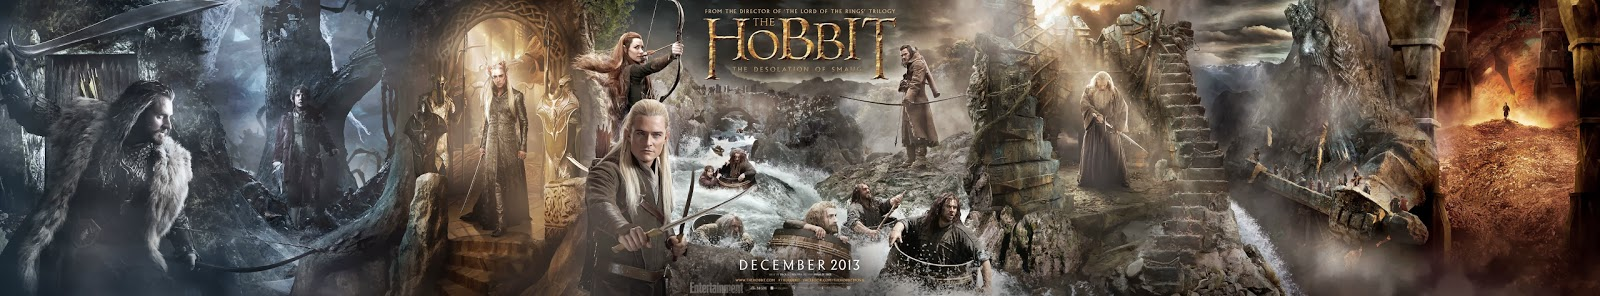 The Hobbit: The Desolation of Smaug Tapestry Poster